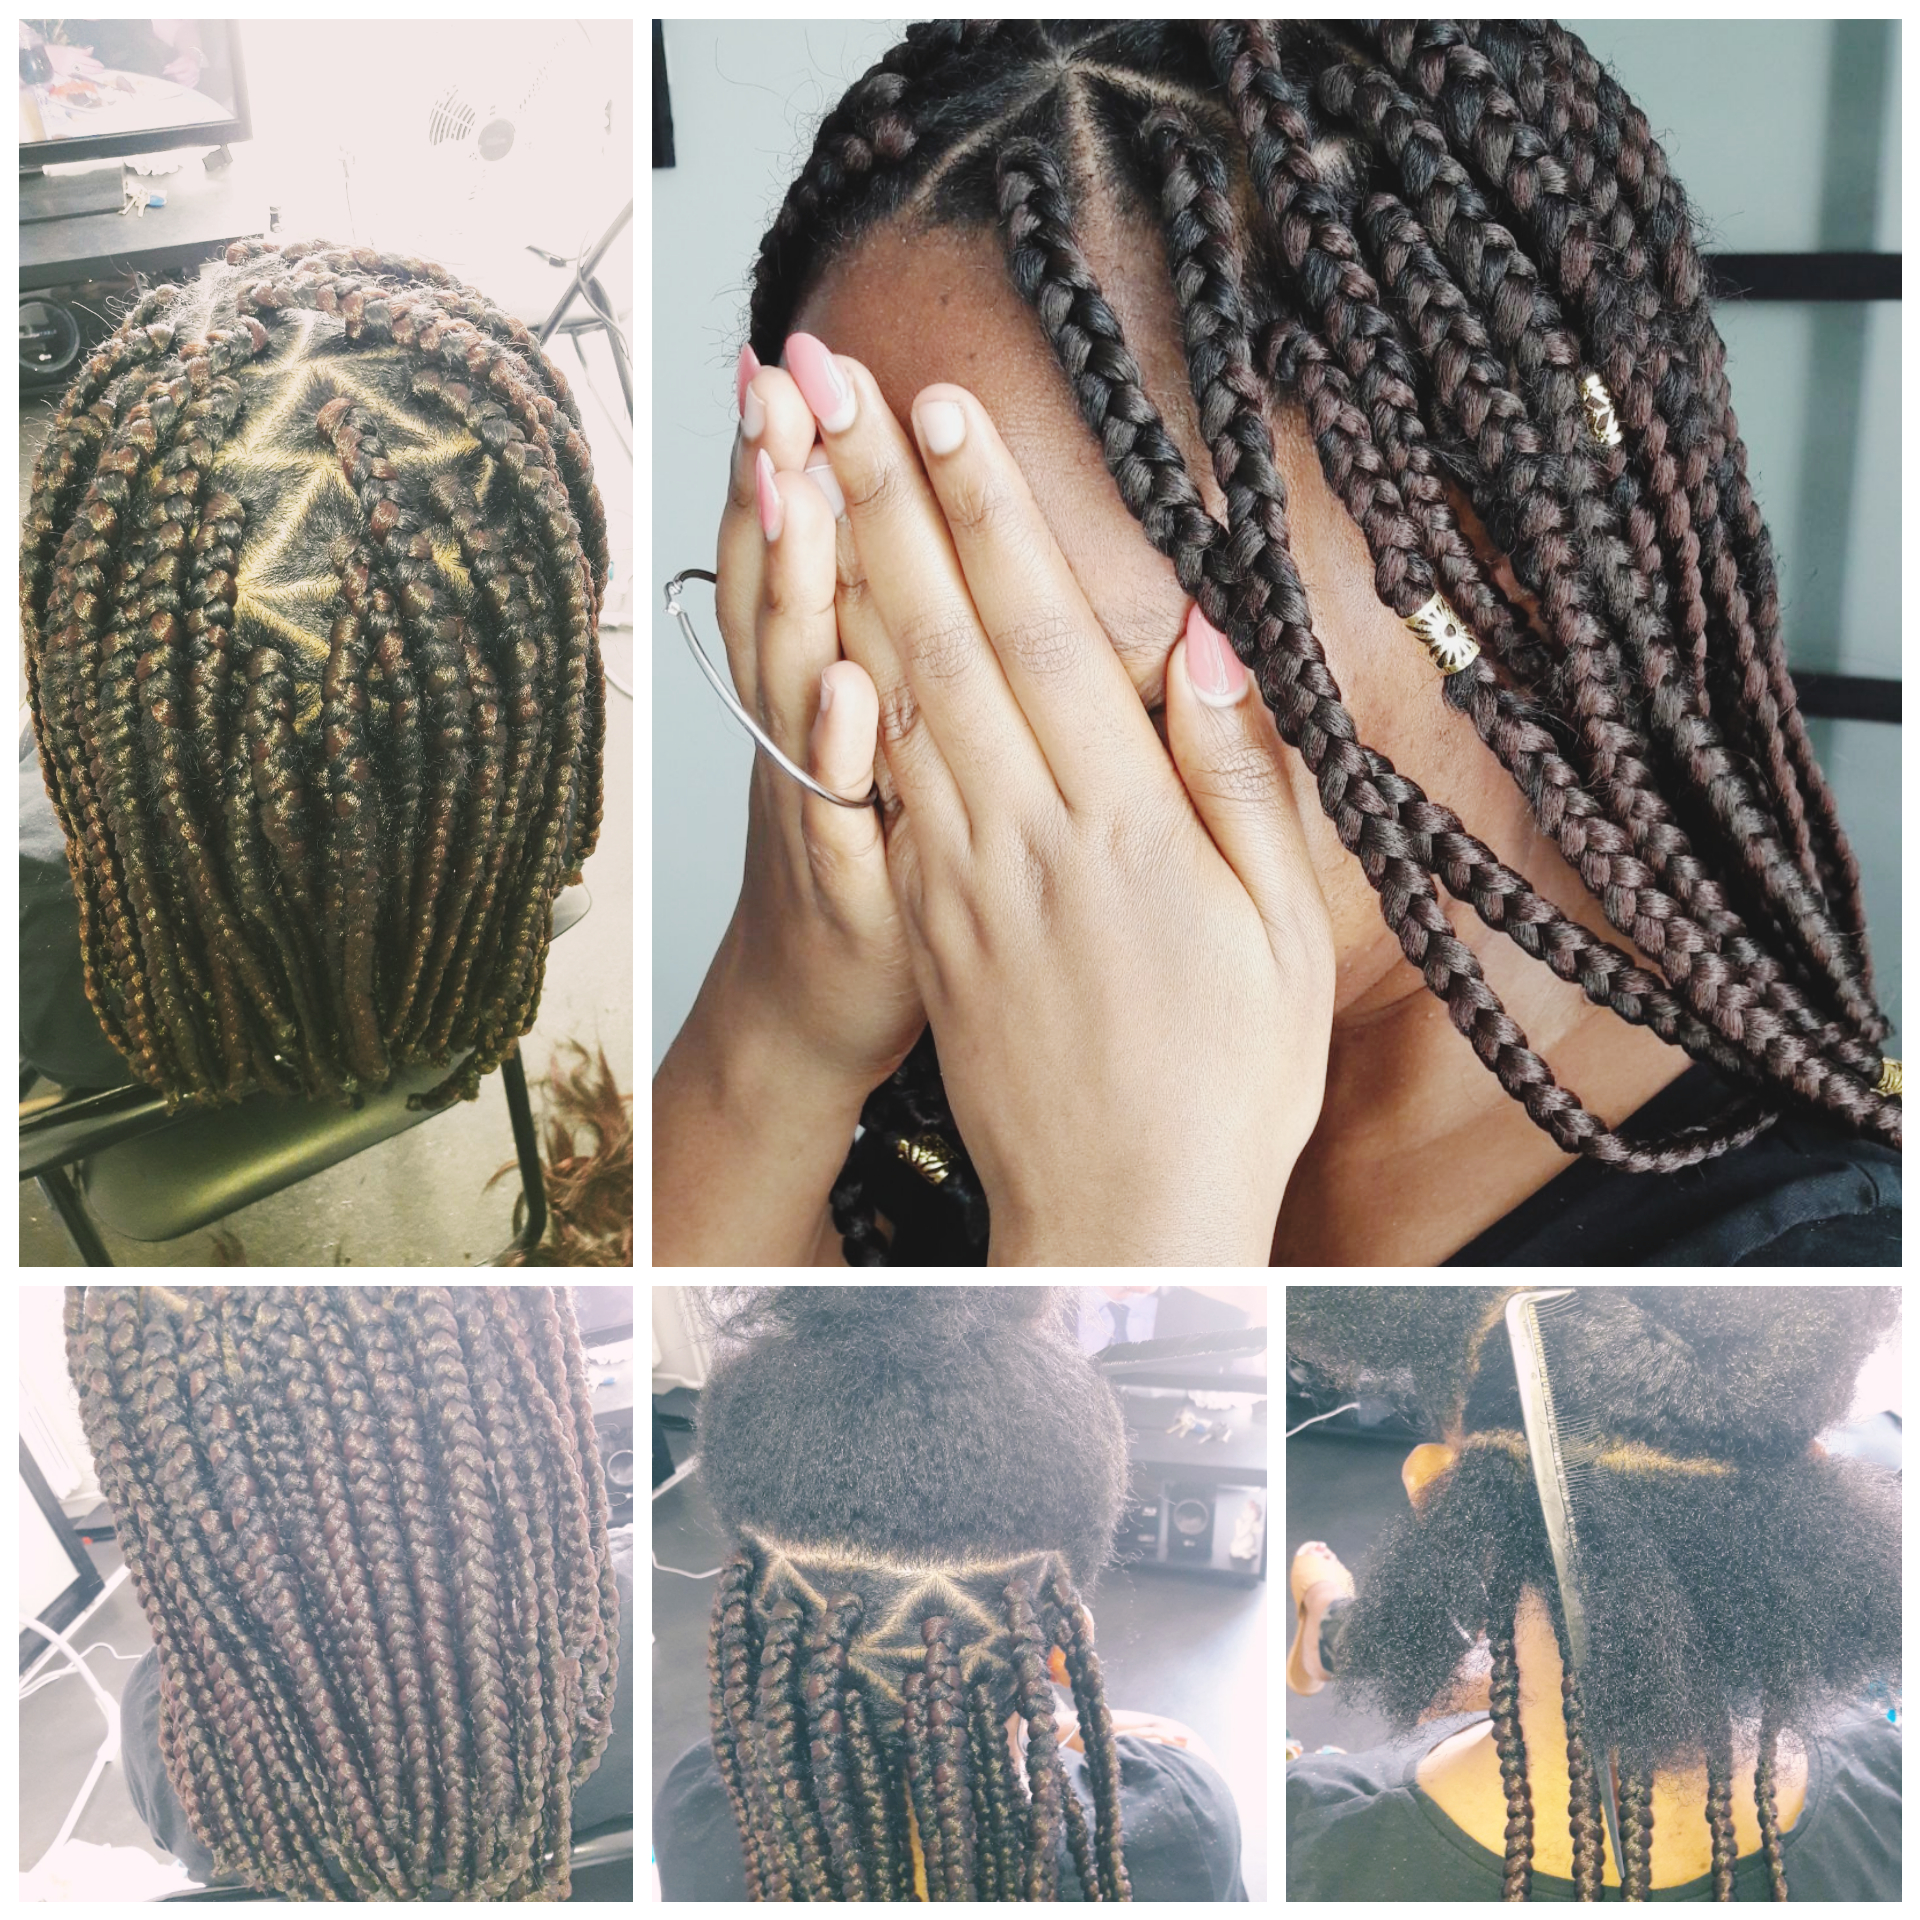 salon de coiffure afro tresse tresses box braids crochet braids vanilles tissages paris 75 77 78 91 92 93 94 95 EANXGLTX